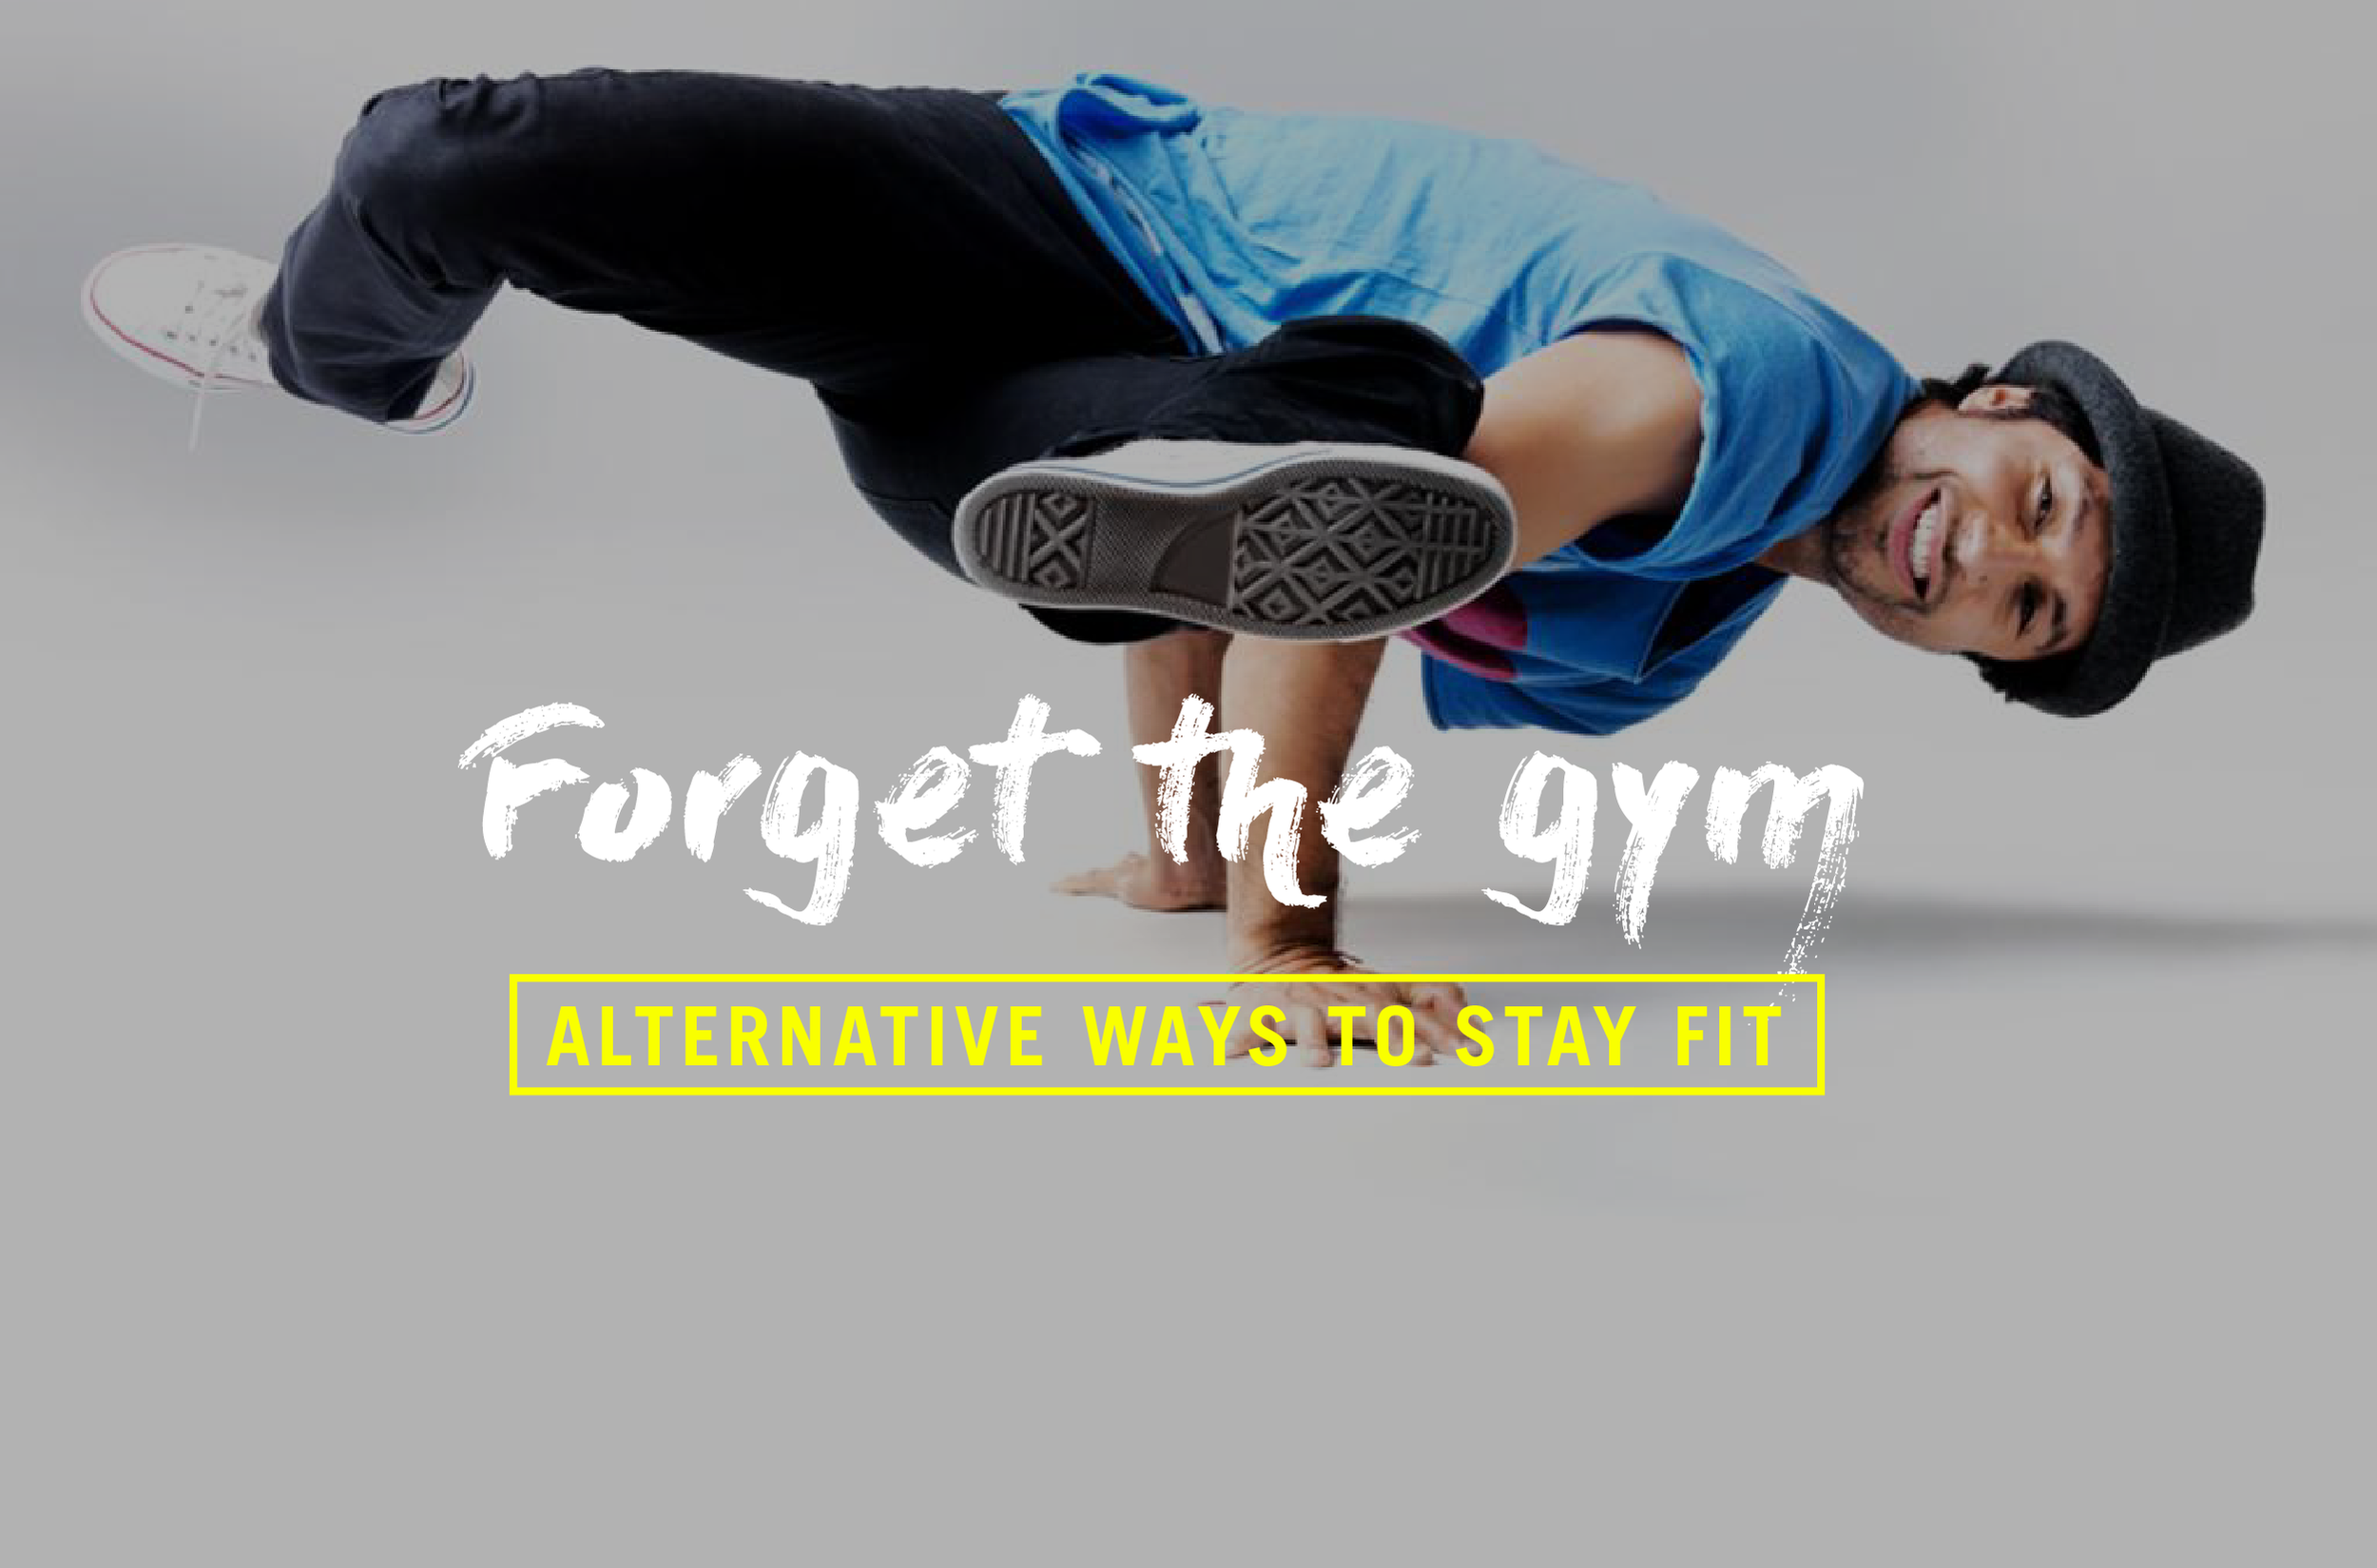 alternative ways to get fit-01.png